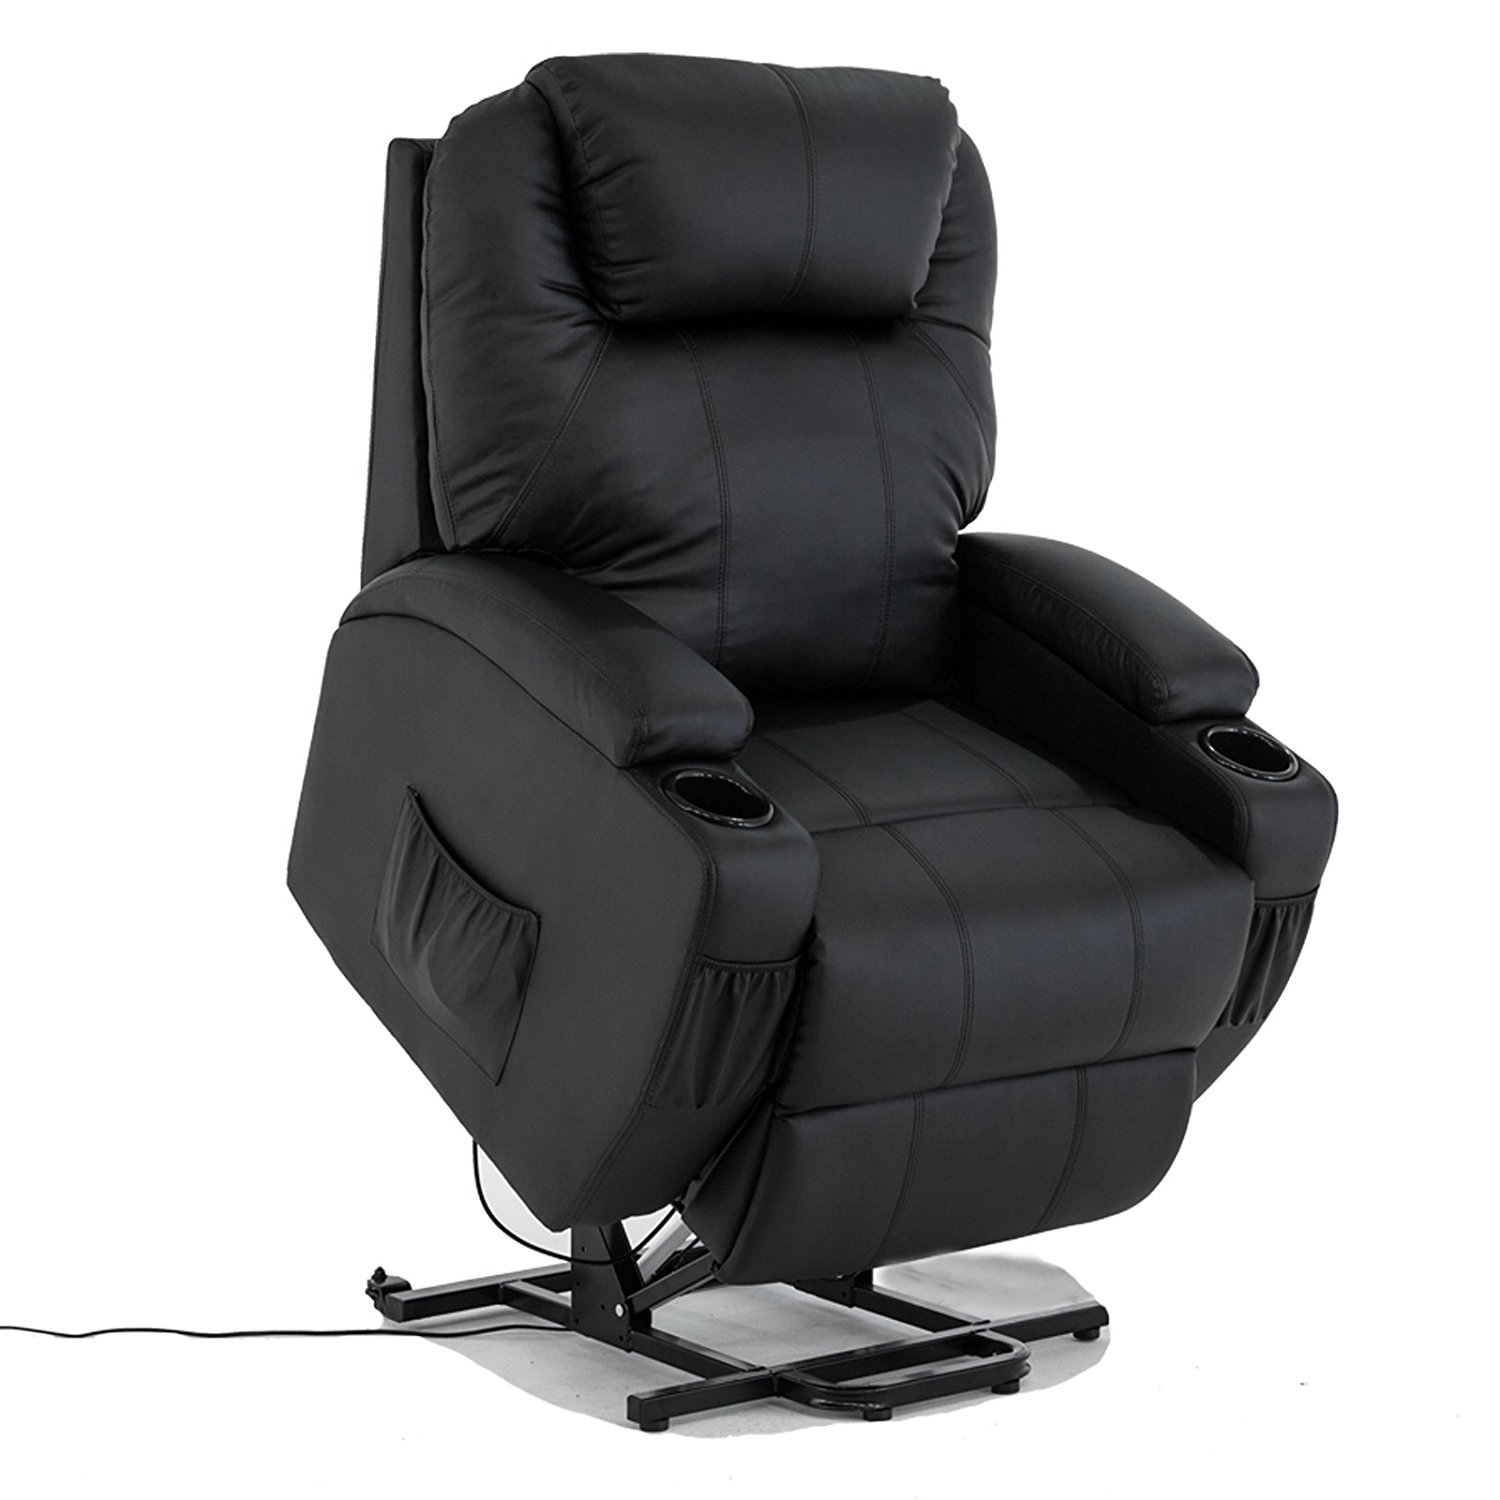 Electric Power Recliner Mecor Electric Power Lift Recliner Chair Comfortable